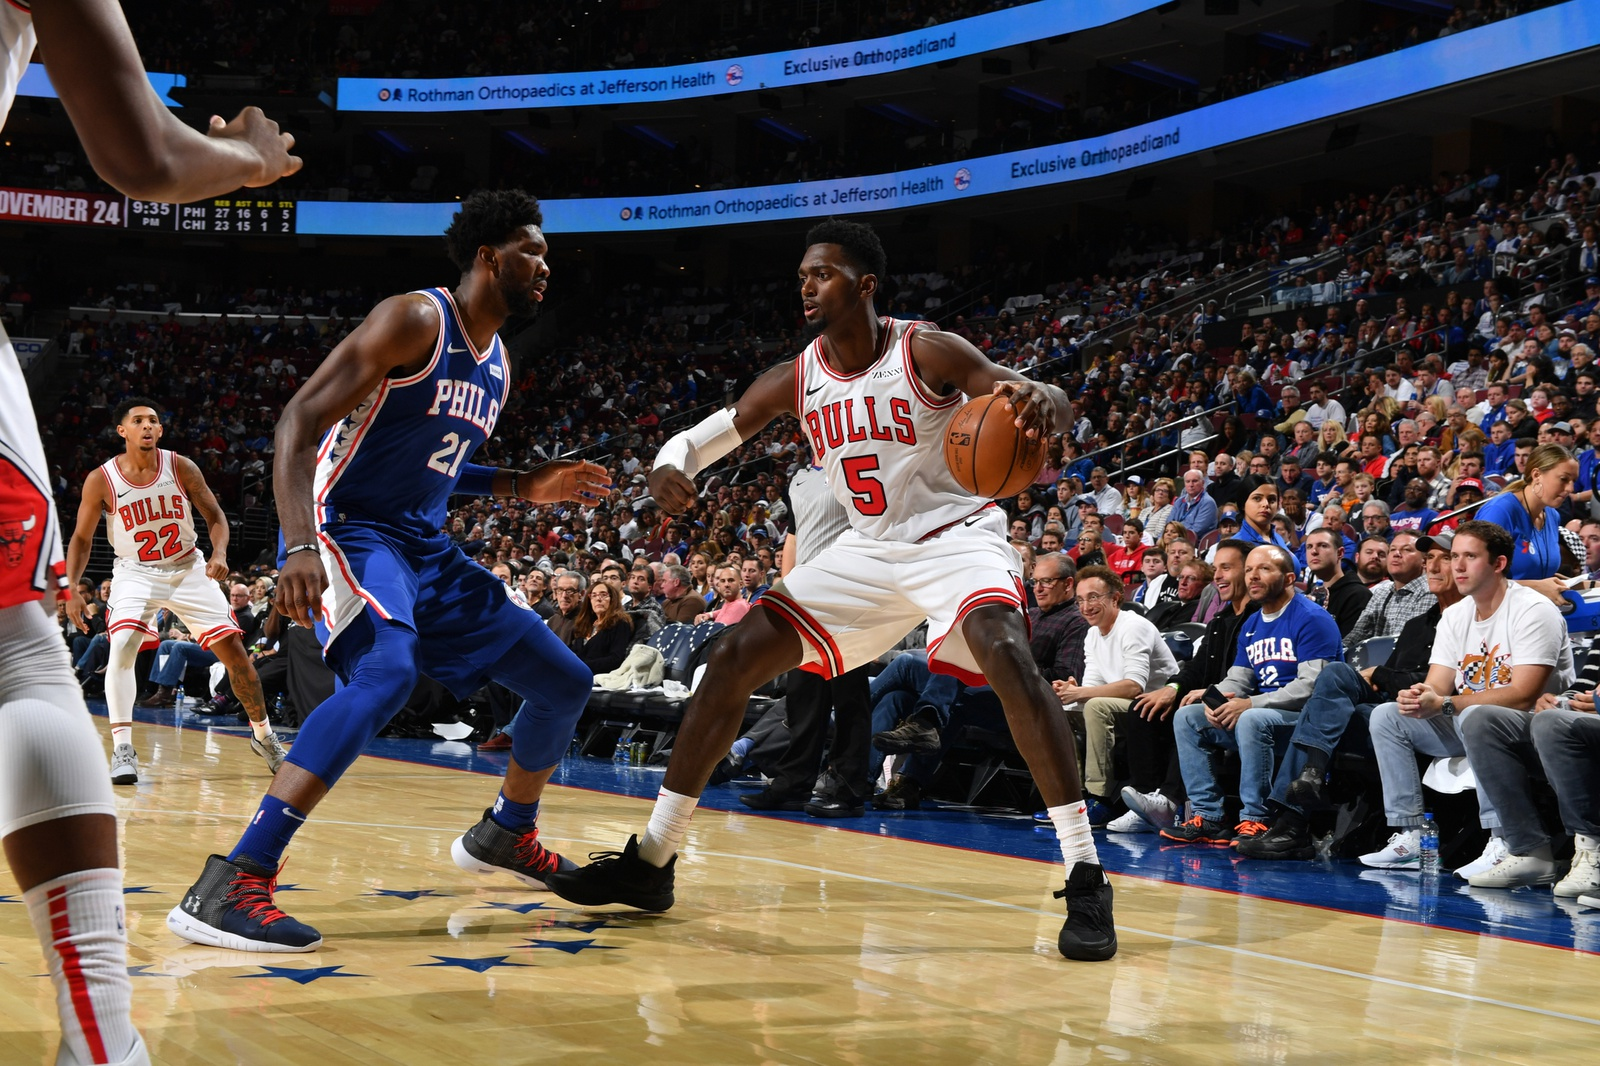 Bobby Portis of the Chicago Bulls dribbles the ball against Joel Embiid in the Bulls' season opener against the Philadelphia 76ers, October 18, 2018